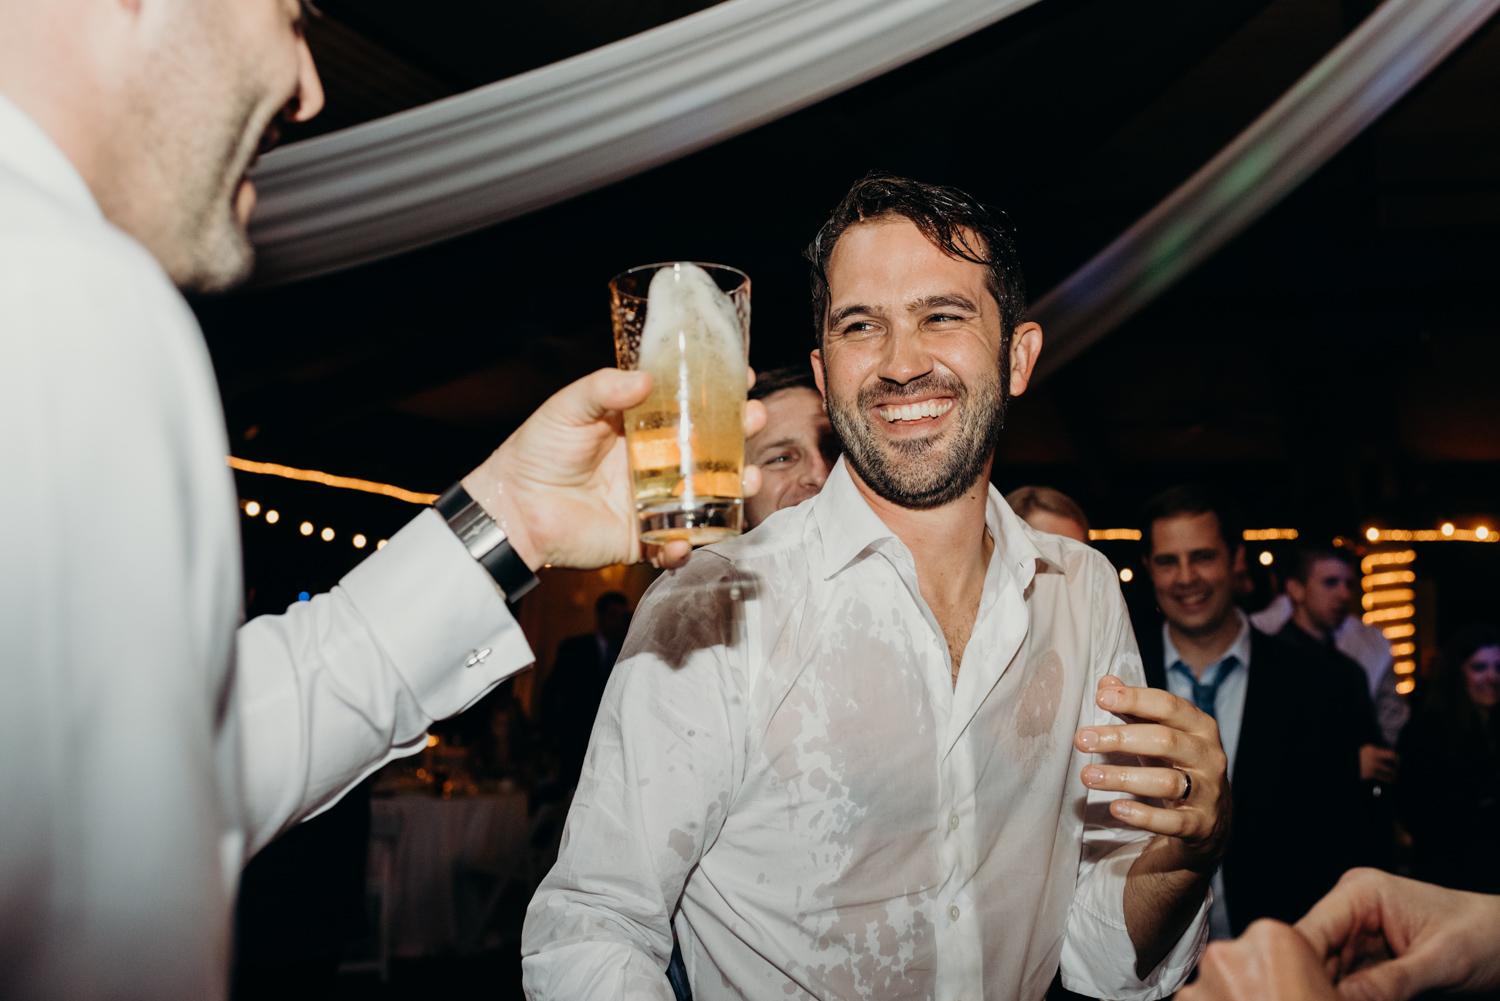 Groom laughs after he gets beer poured on him during his wedding reception at McCormick Ranch Golf Club in Scottsdale, Arizona.